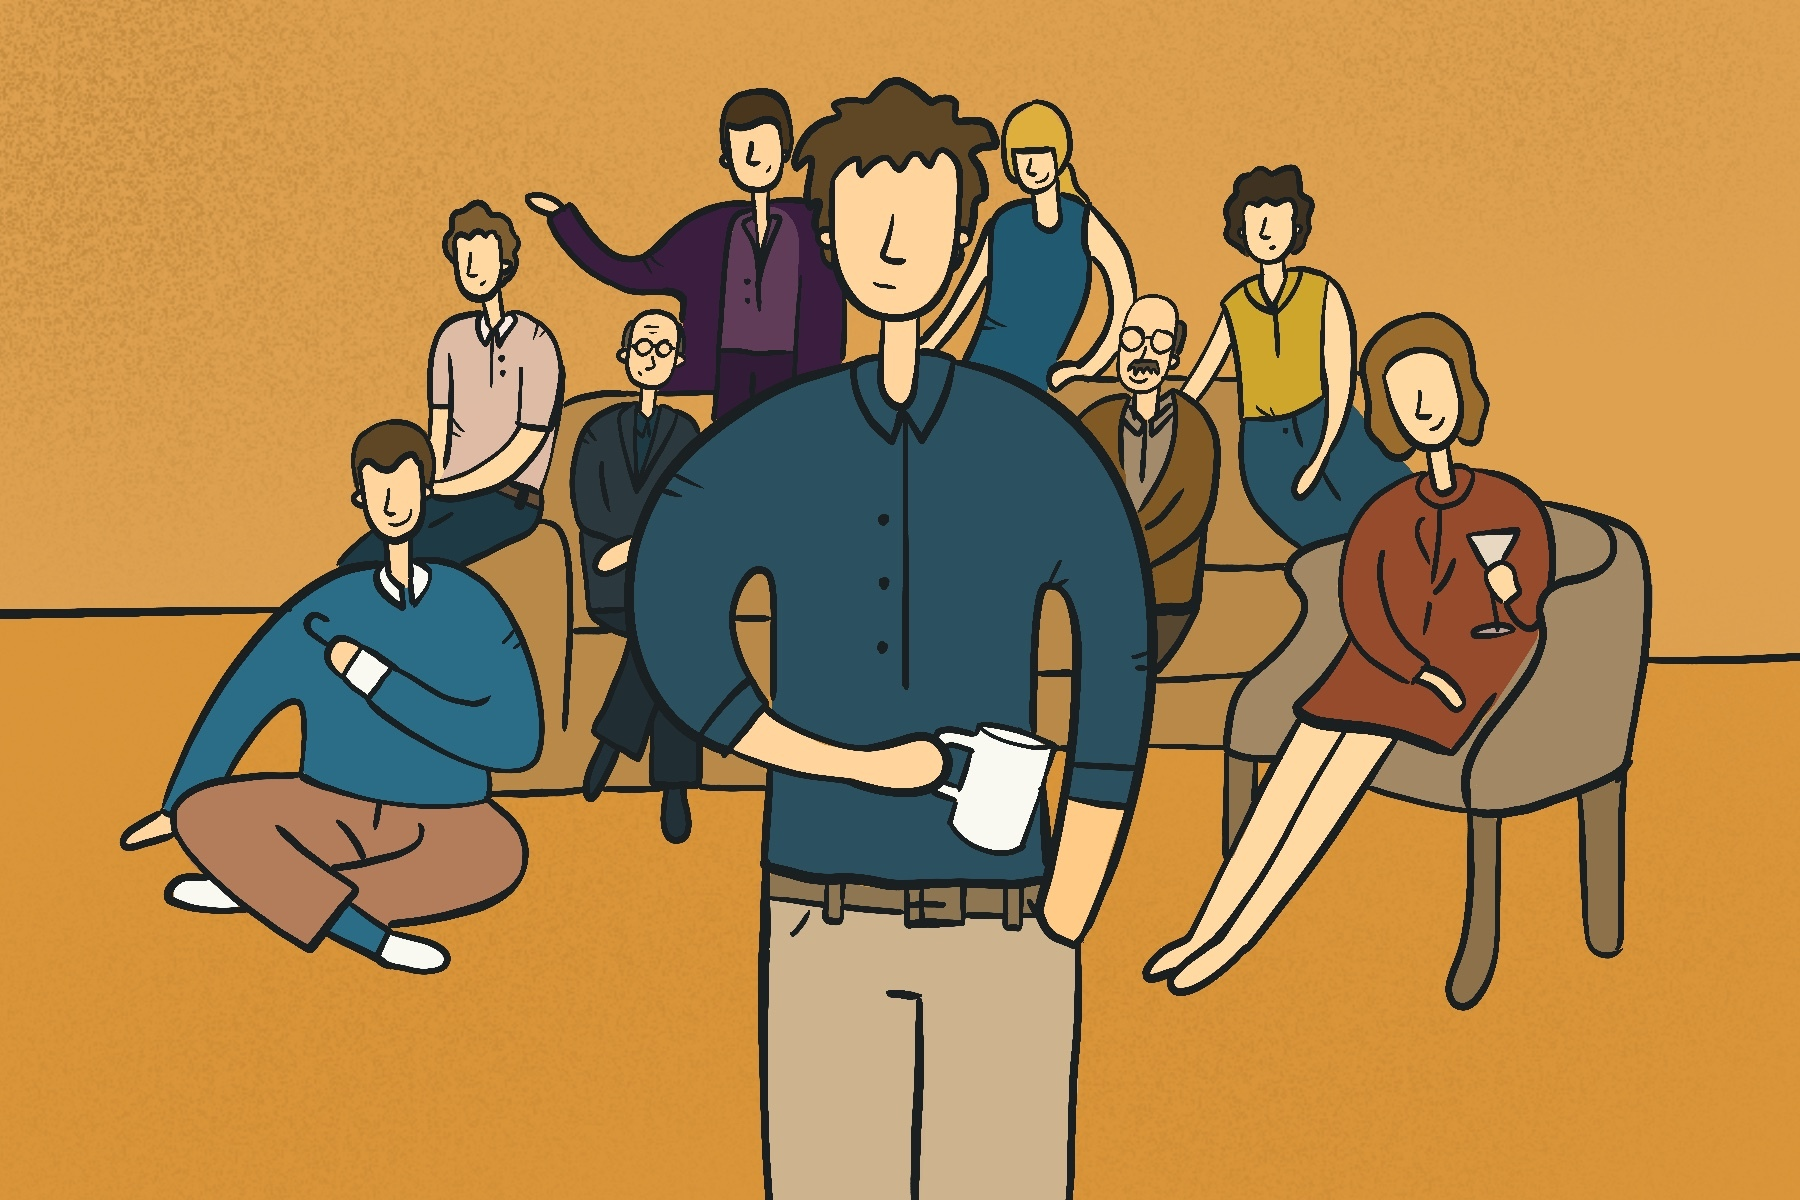 Illustration by Sonja Vasiljeva for an article on Arrested Development and The Office